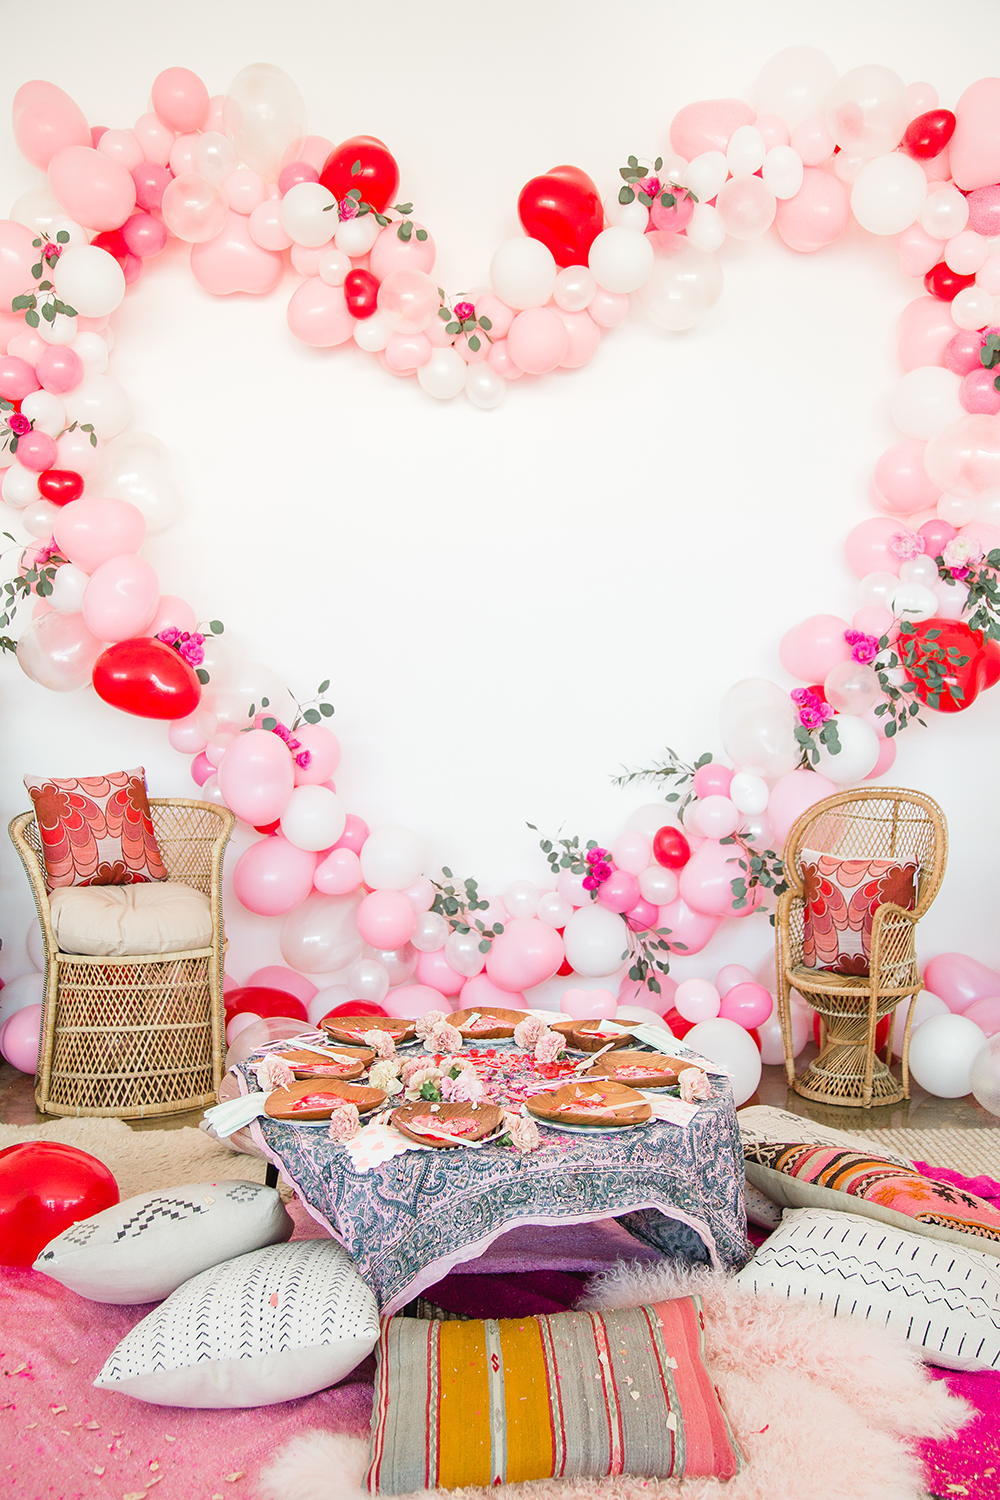 Wedding Planners Share Their Best Tips for Styling a Valentine's Day Bridal Shower